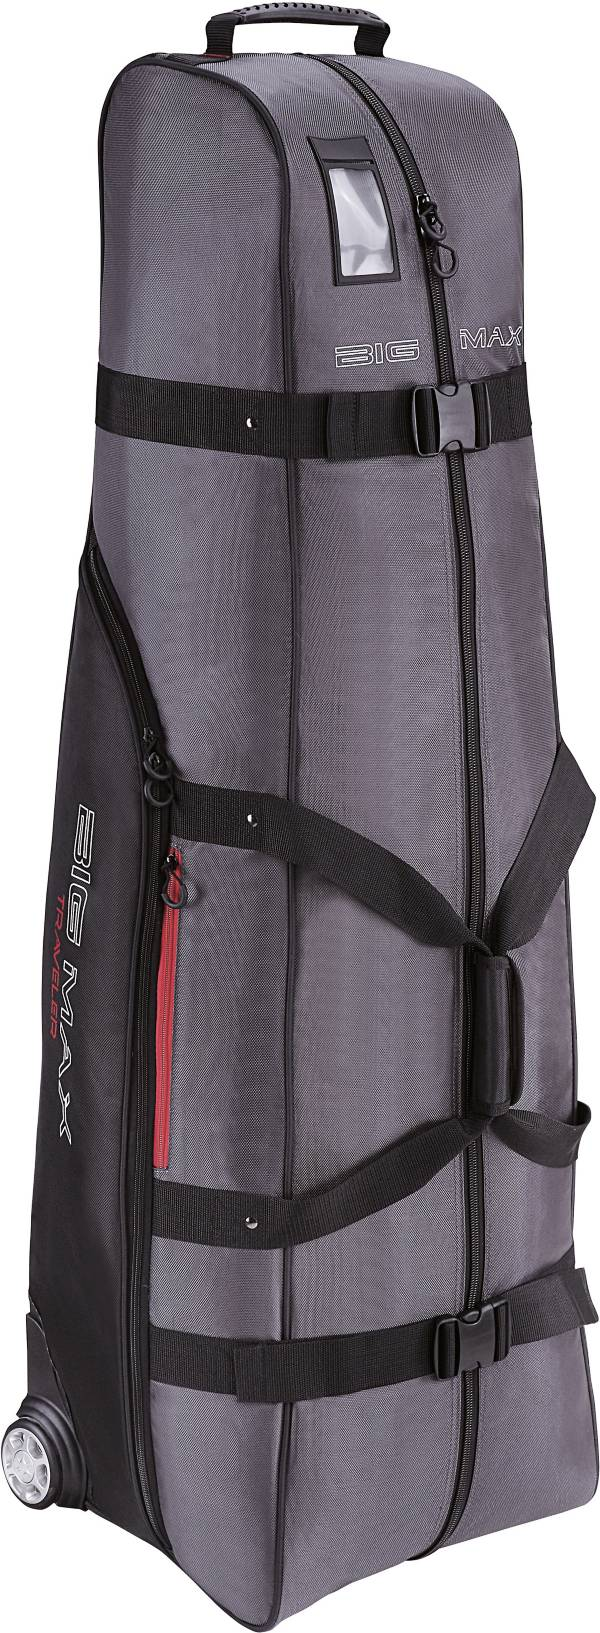 BIG MAX Traveler Travel Cover product image